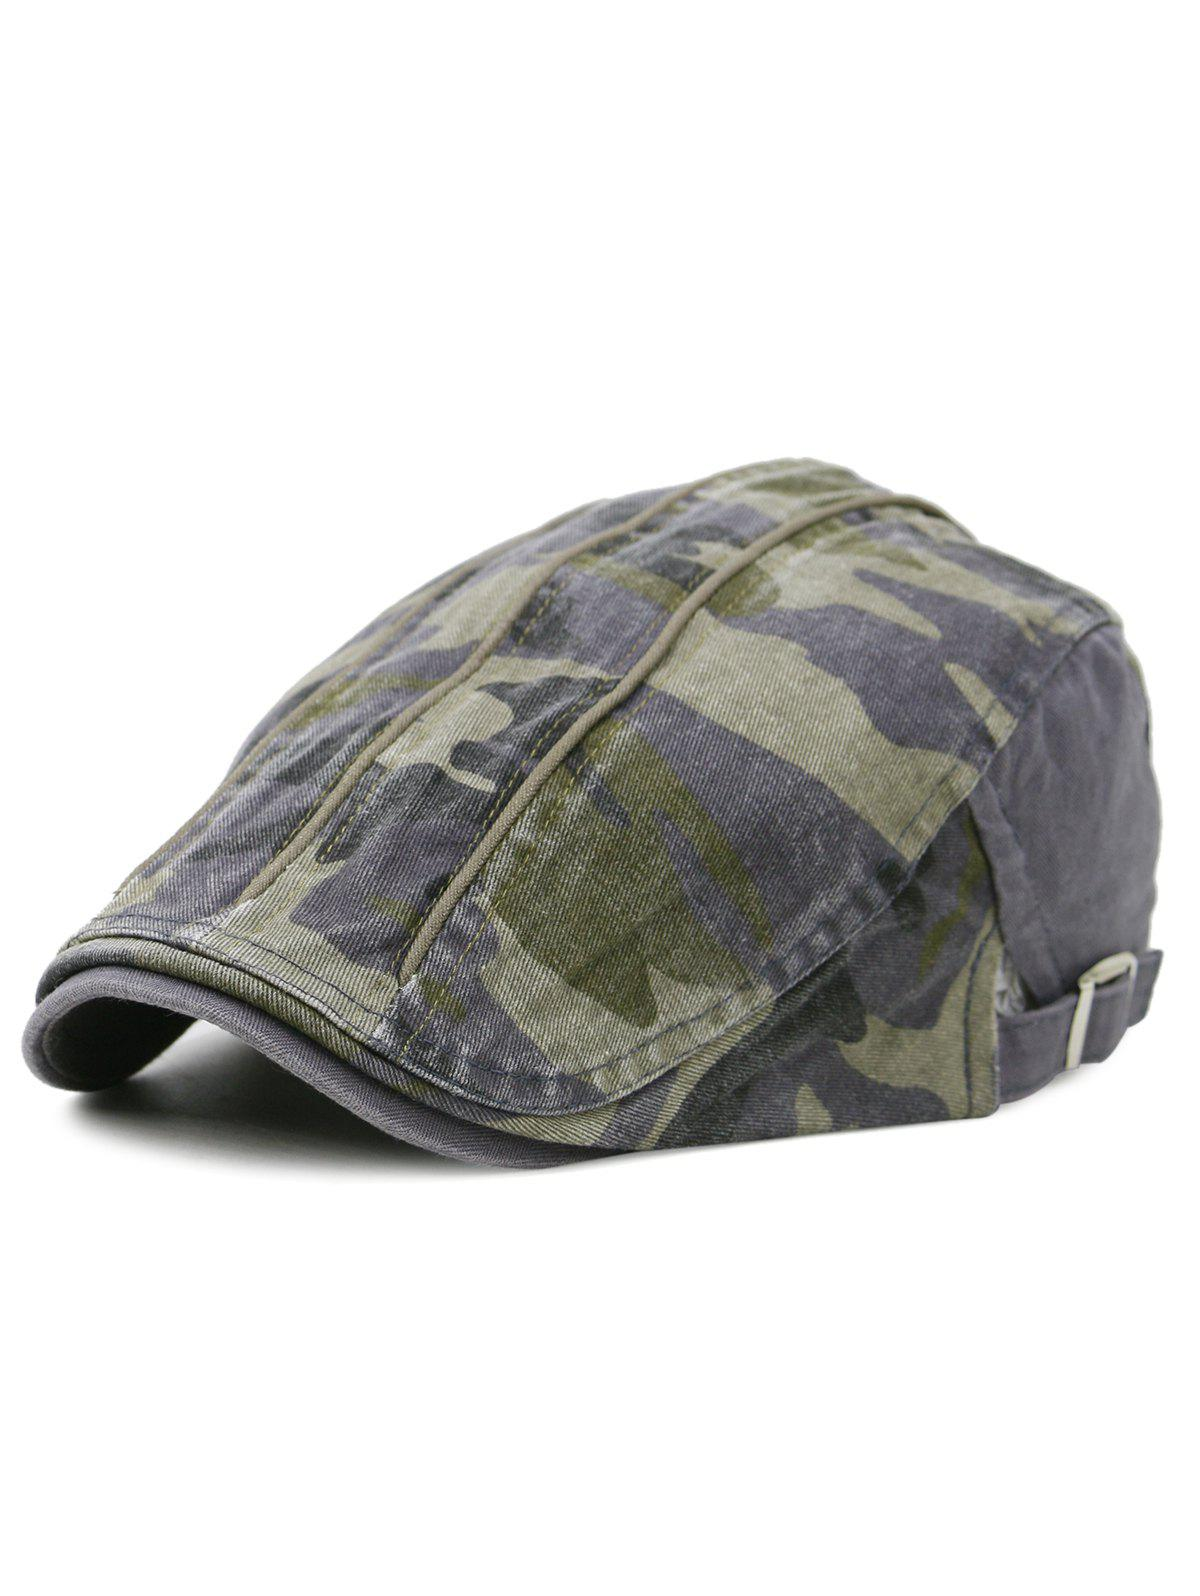 Unique Camouflage Pattern Newsboy Cap - GRAY